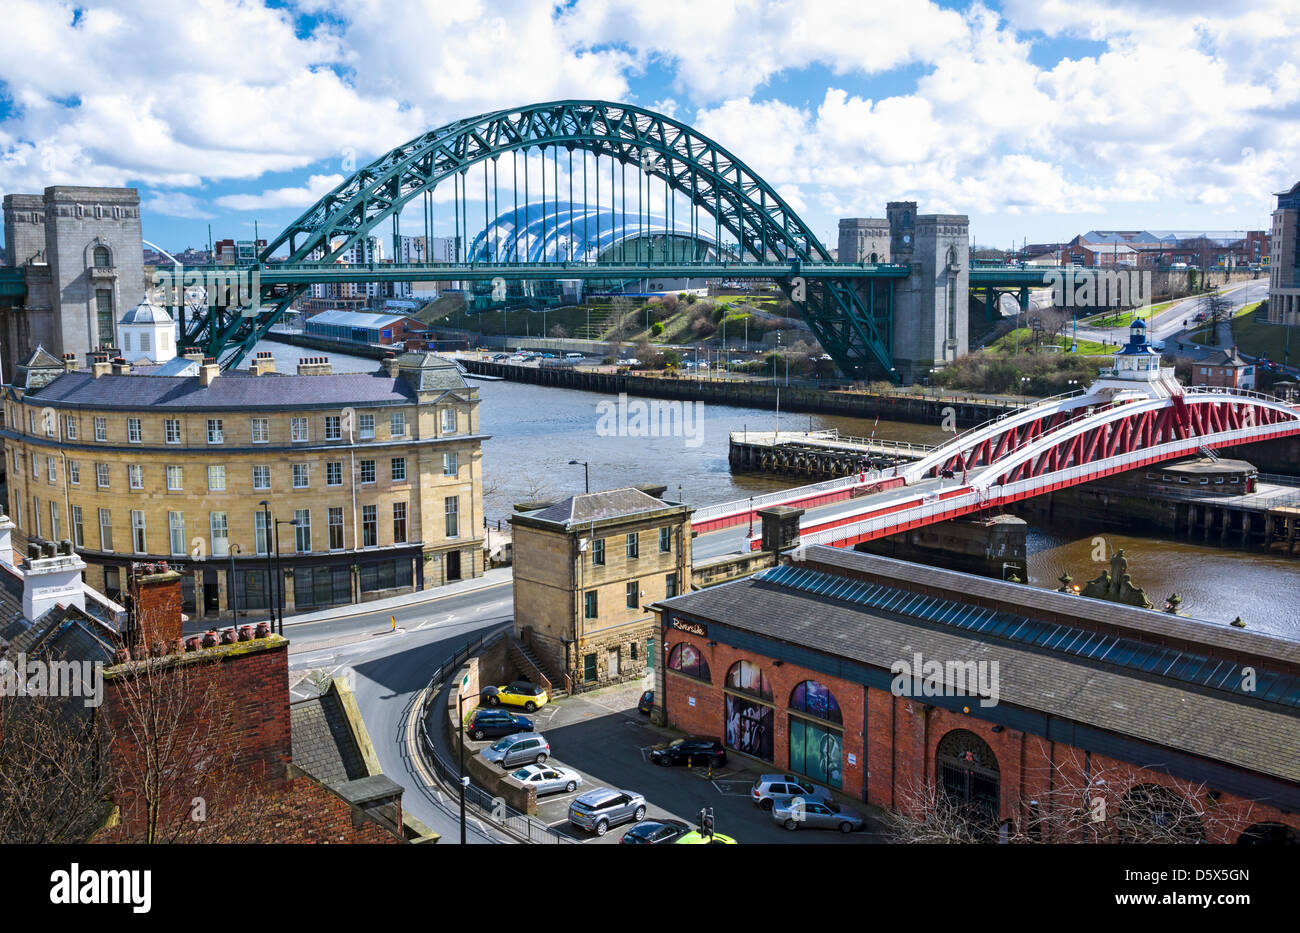 The Swing & Tyne Bridge over the River Tyne at Newcastle. - Stock Image